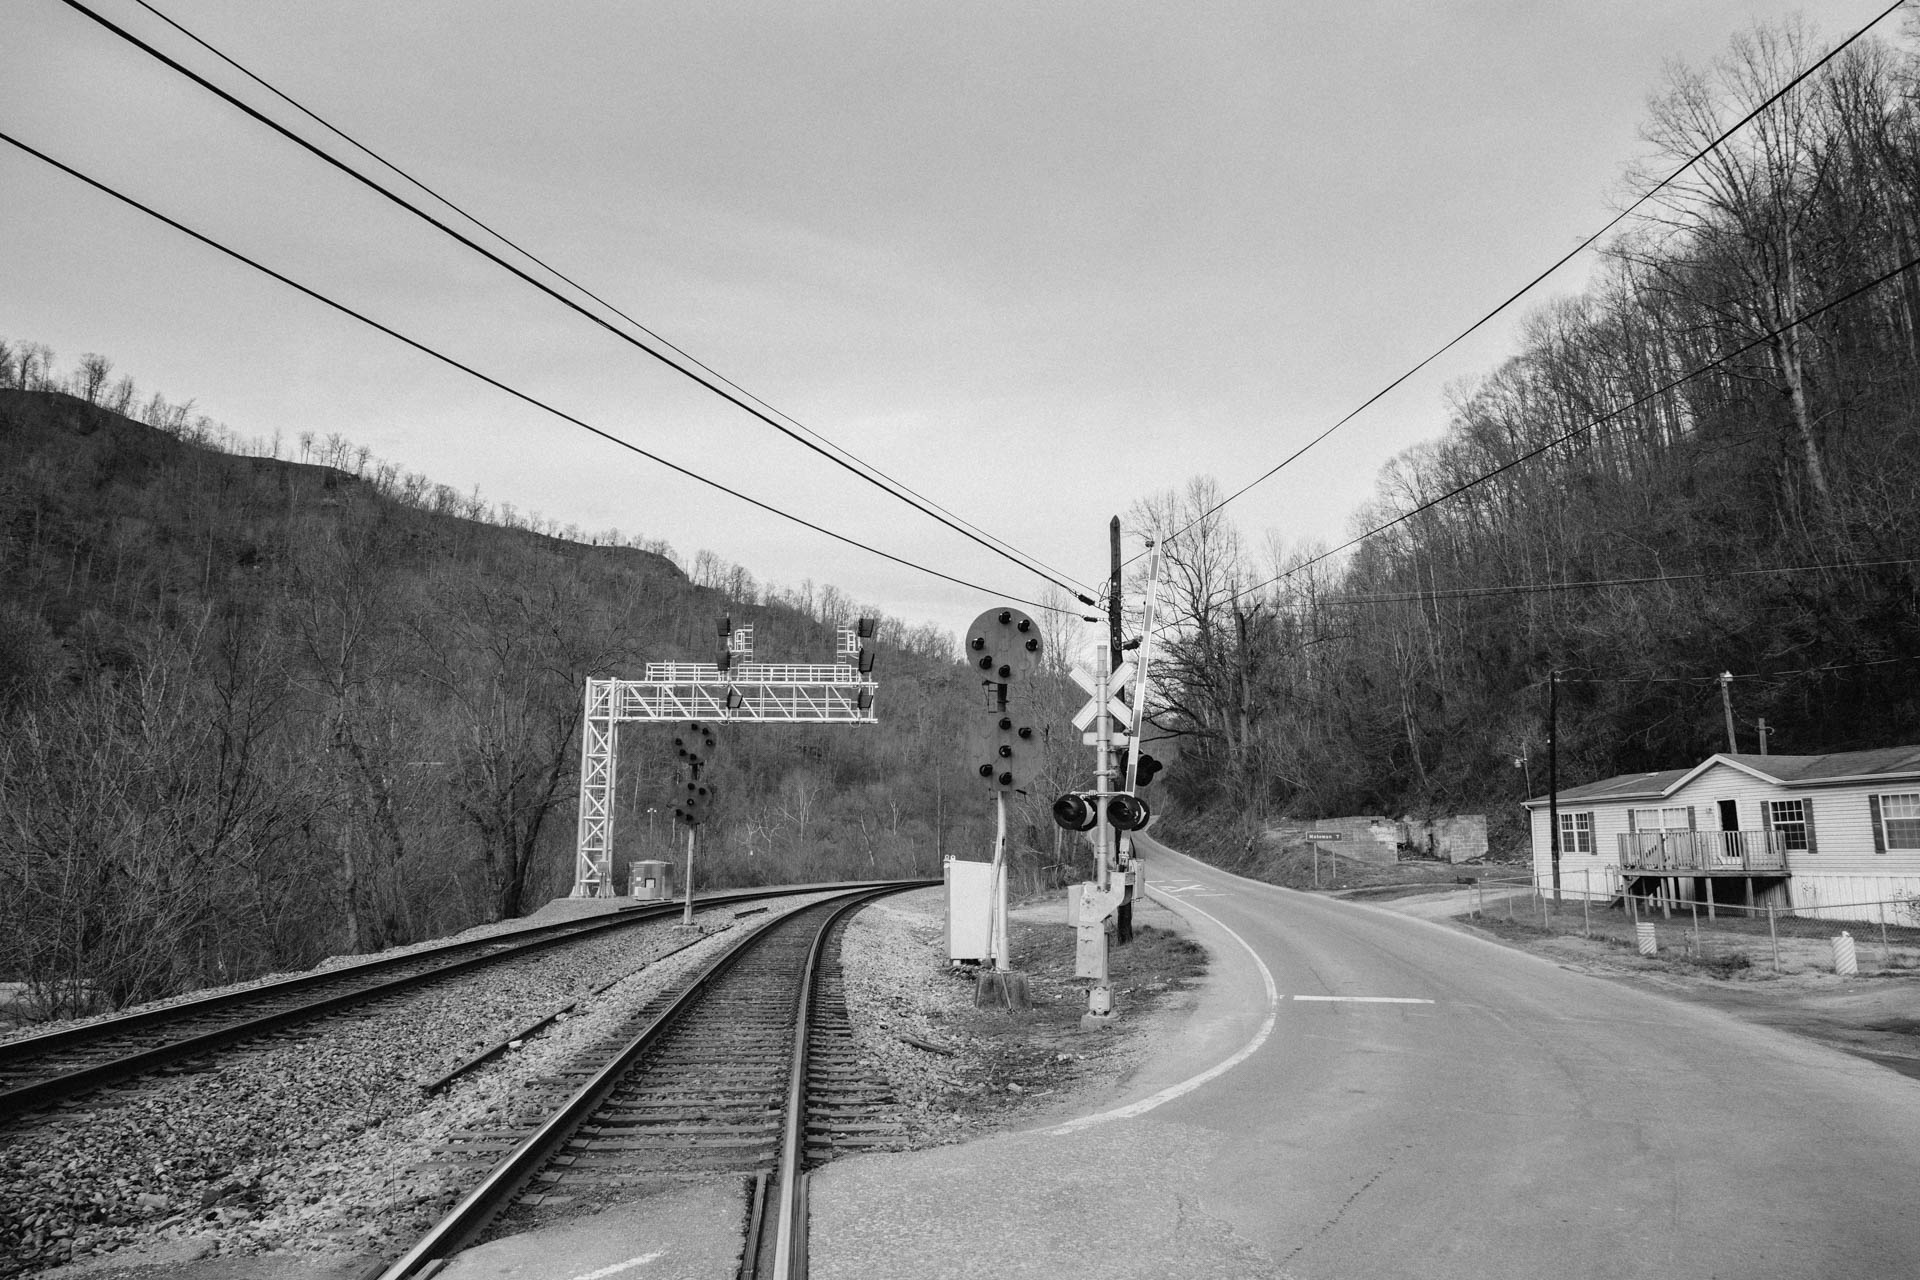 ns-tracks-nw-signals-delorme-wv-2195